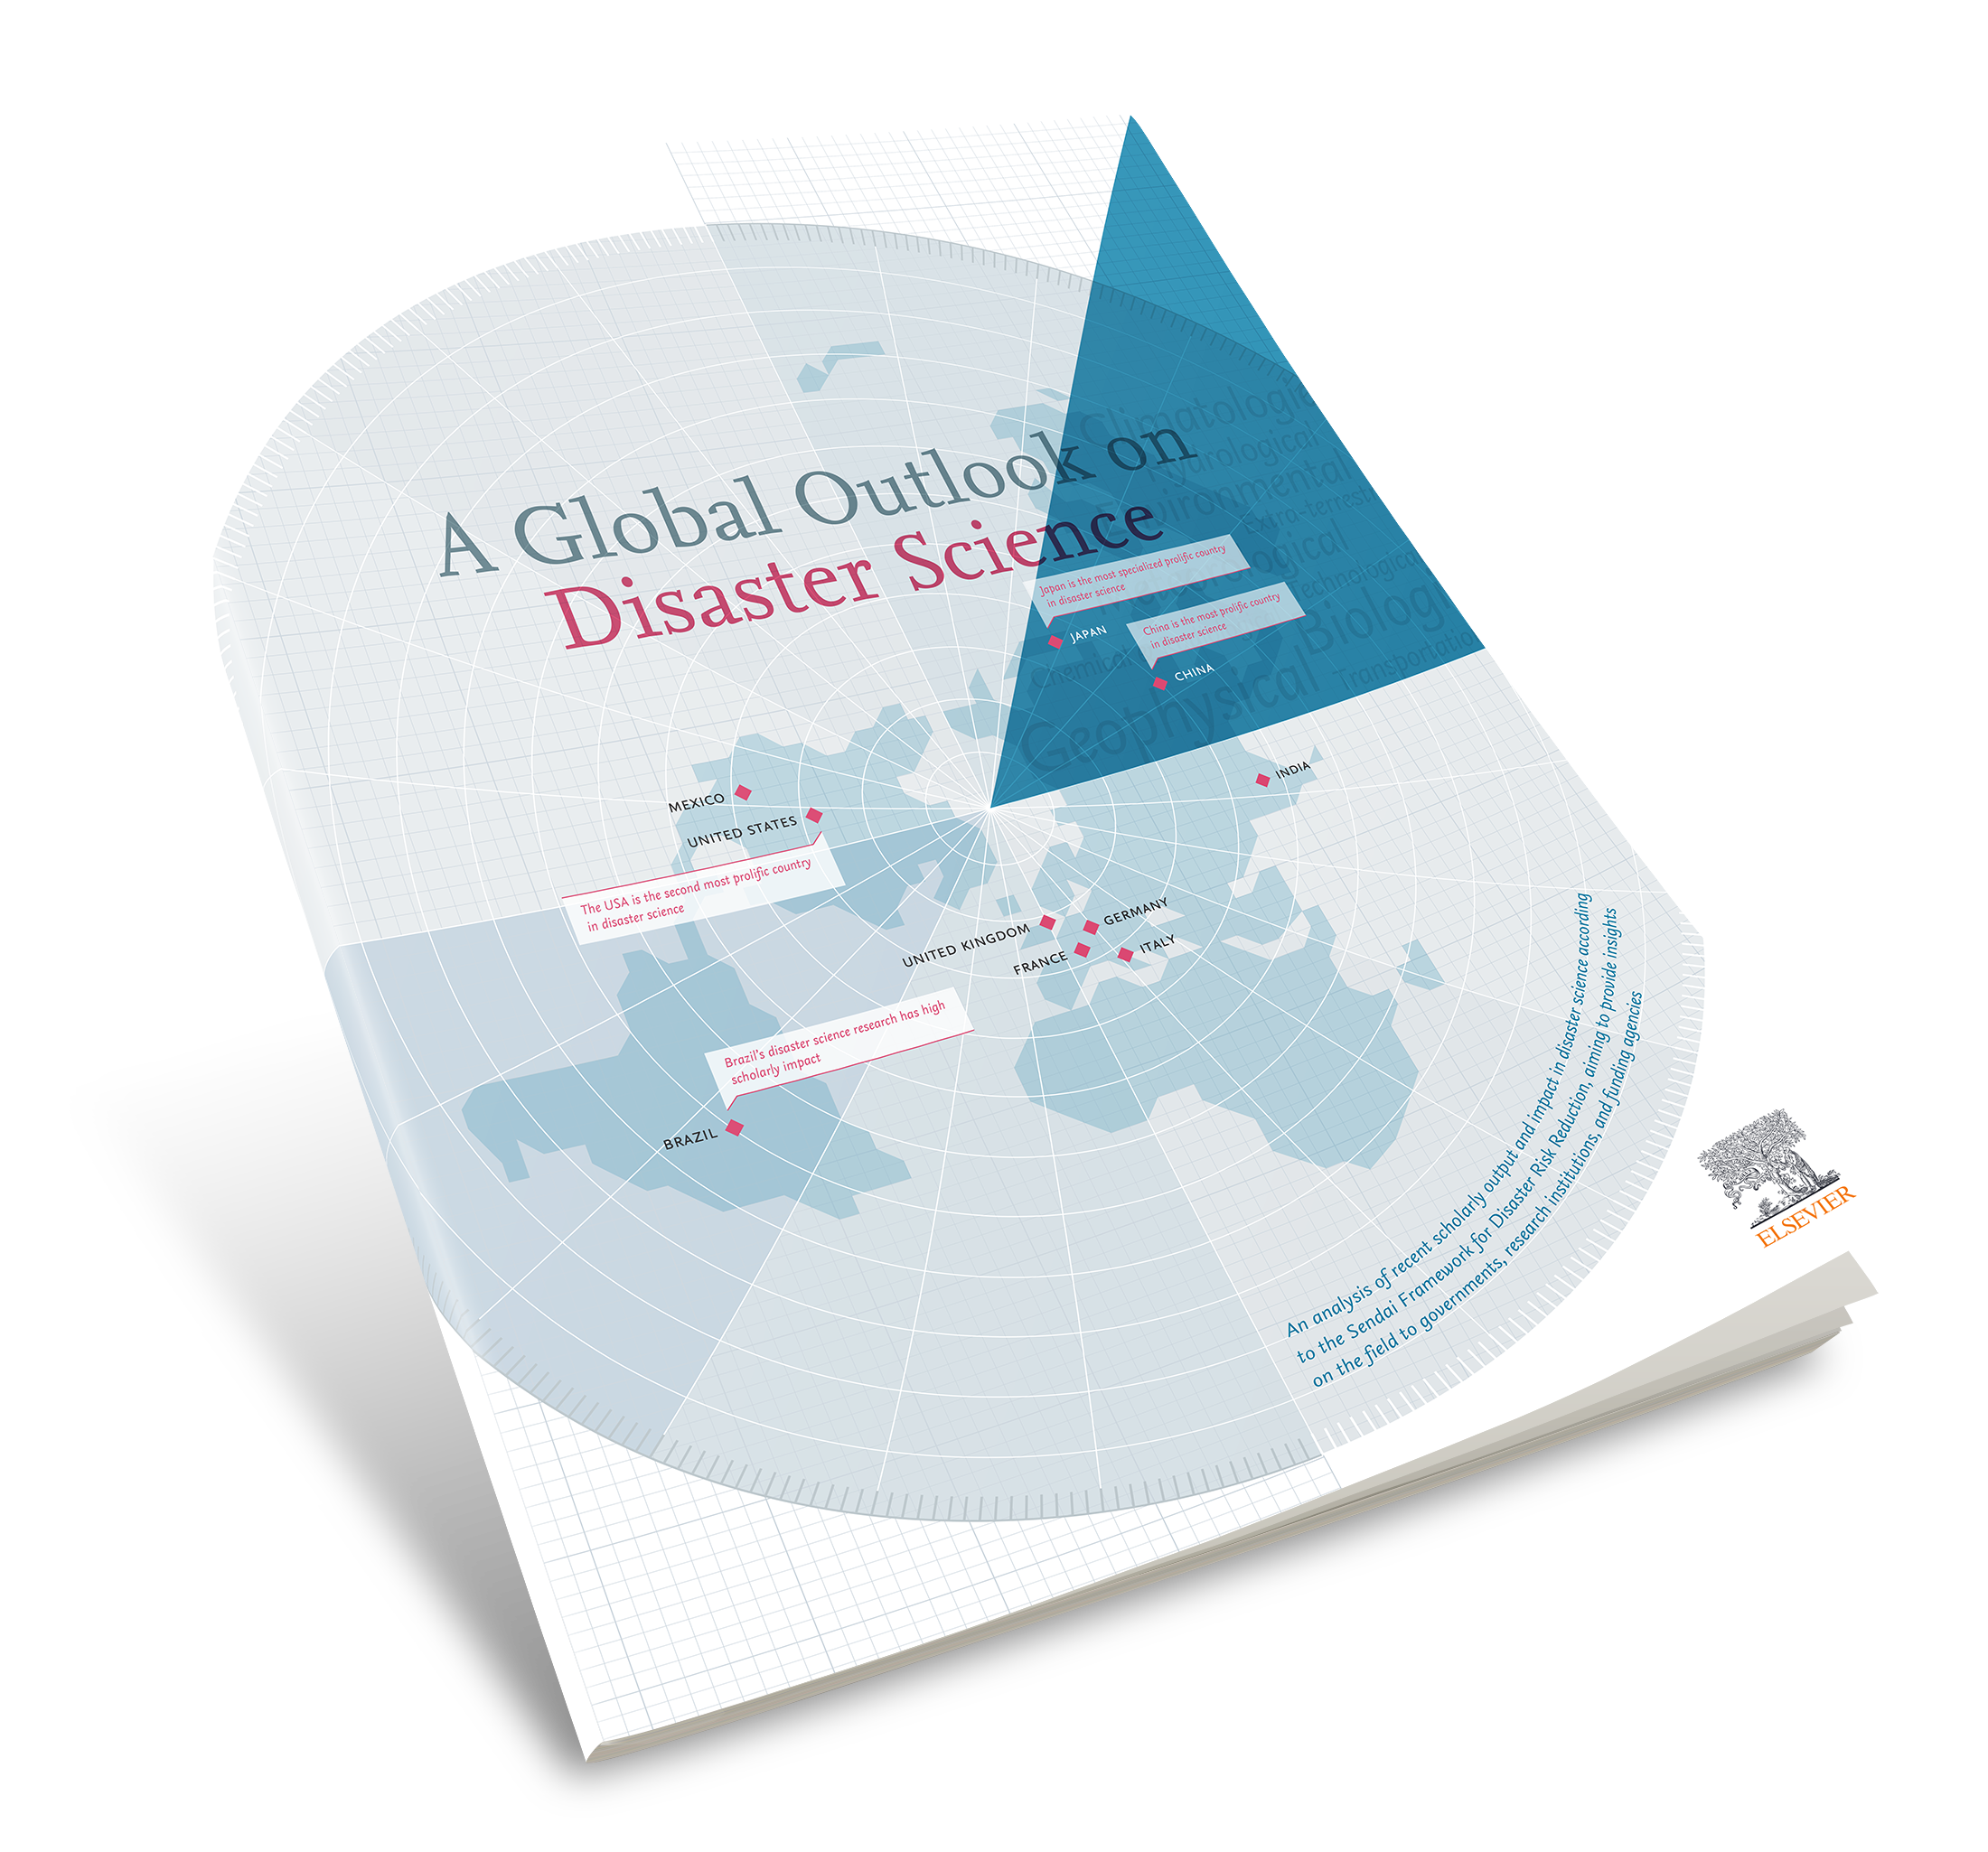 Global Outlook on Disaster Science